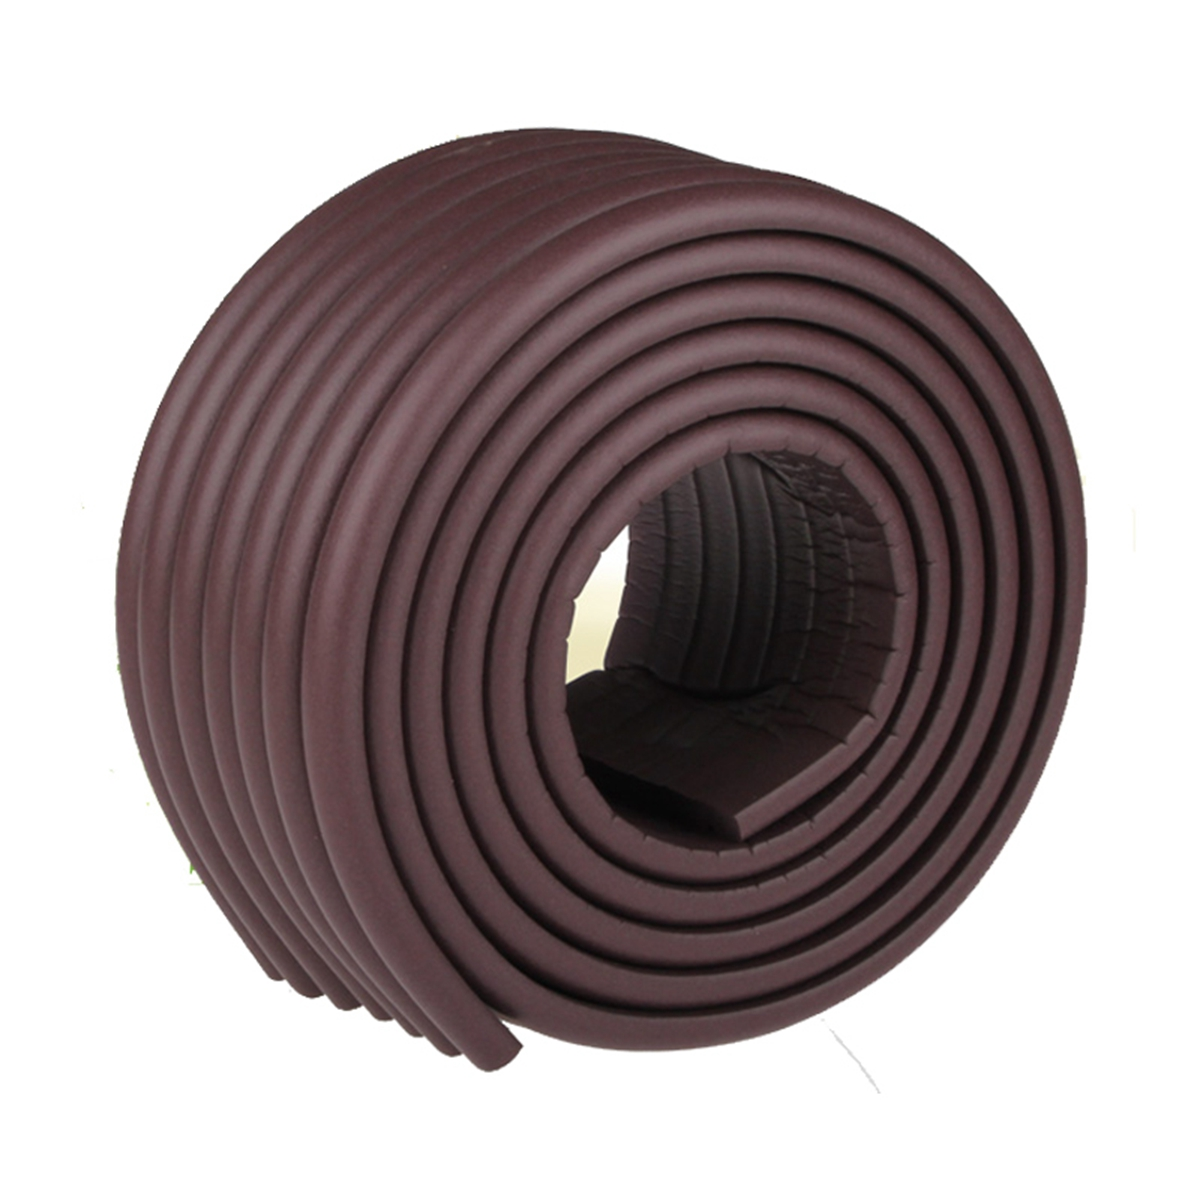 M2cbridge Multifunctional Edge and Corner Guard Coverage Baby Safety Bumper DIY 6.5 Ft (Brown)